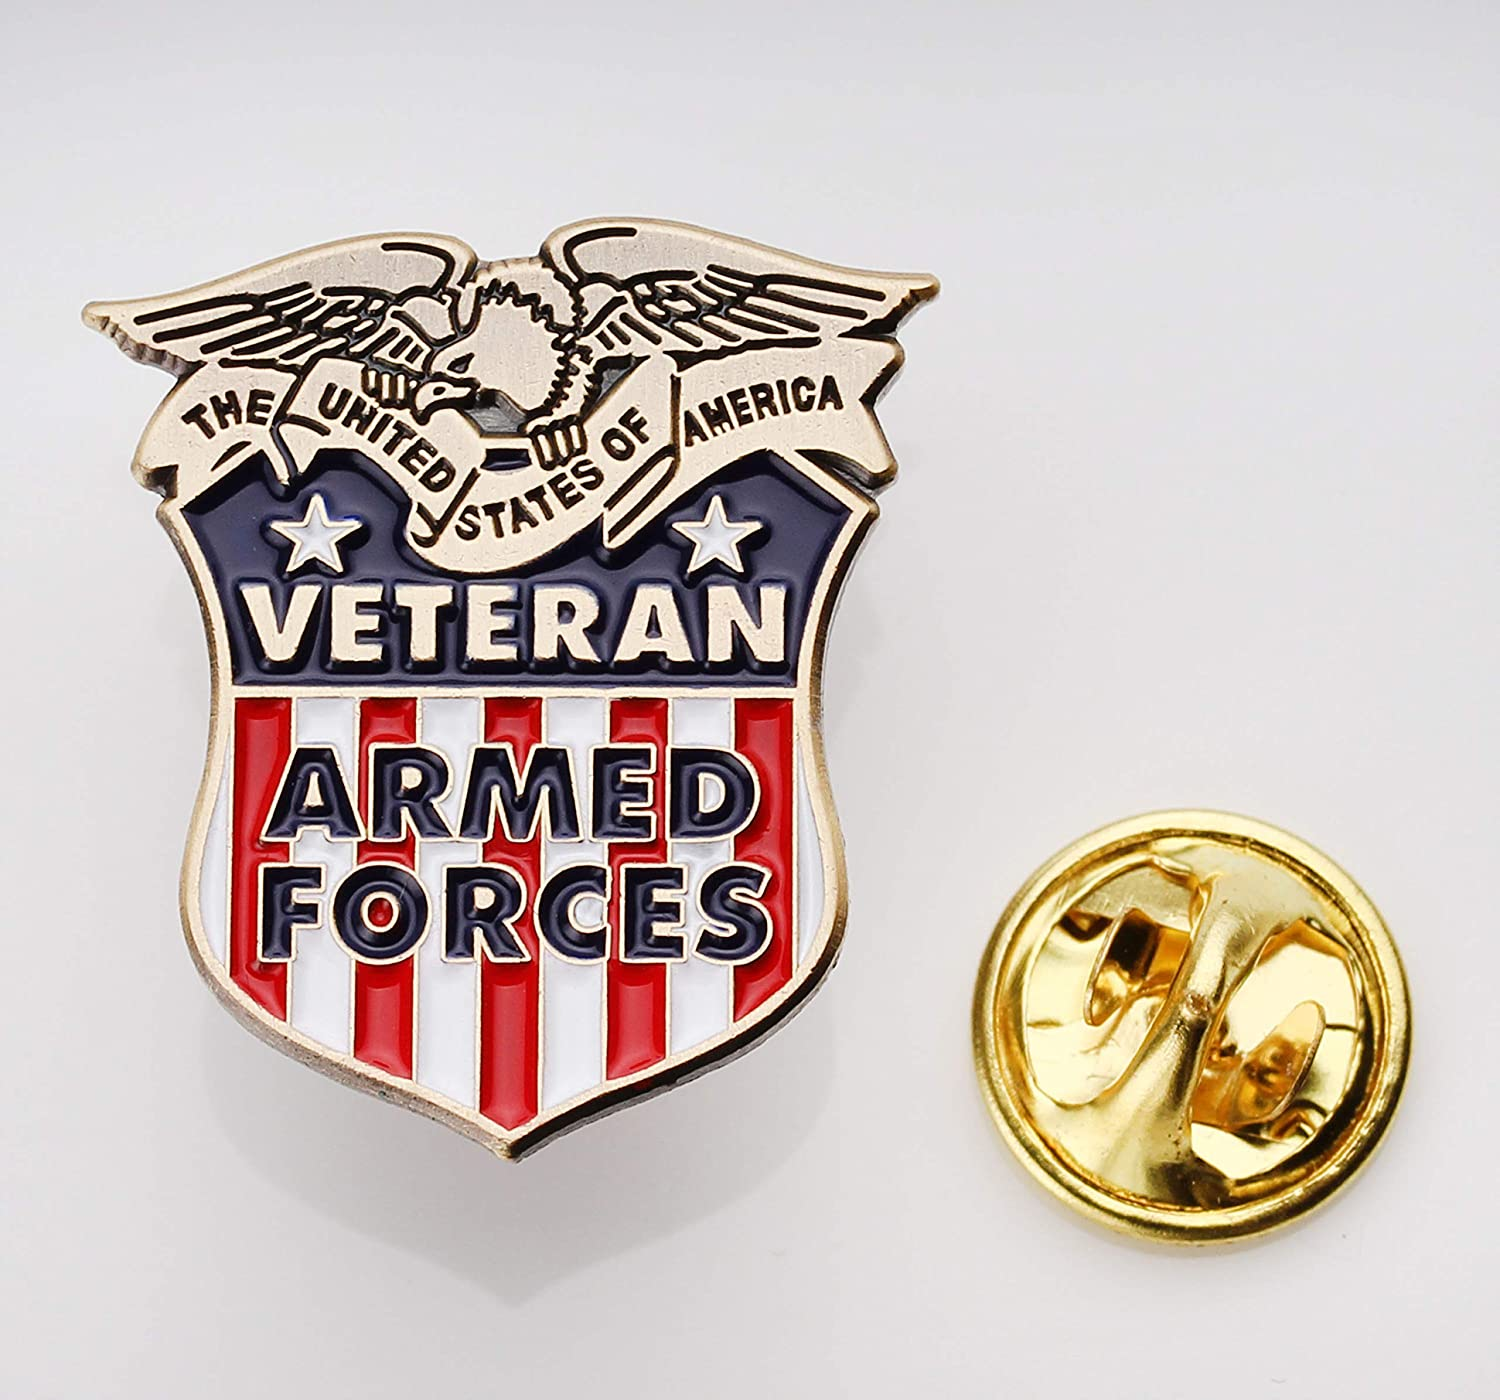 Navy Coast Guard Veterans Hat Pin USA Veteran Pins Officially Licensed Product Air Force Marine Corps Army Coins For Anything Inc Armed Forces Veteran Lapel Pin Vet Owned Company